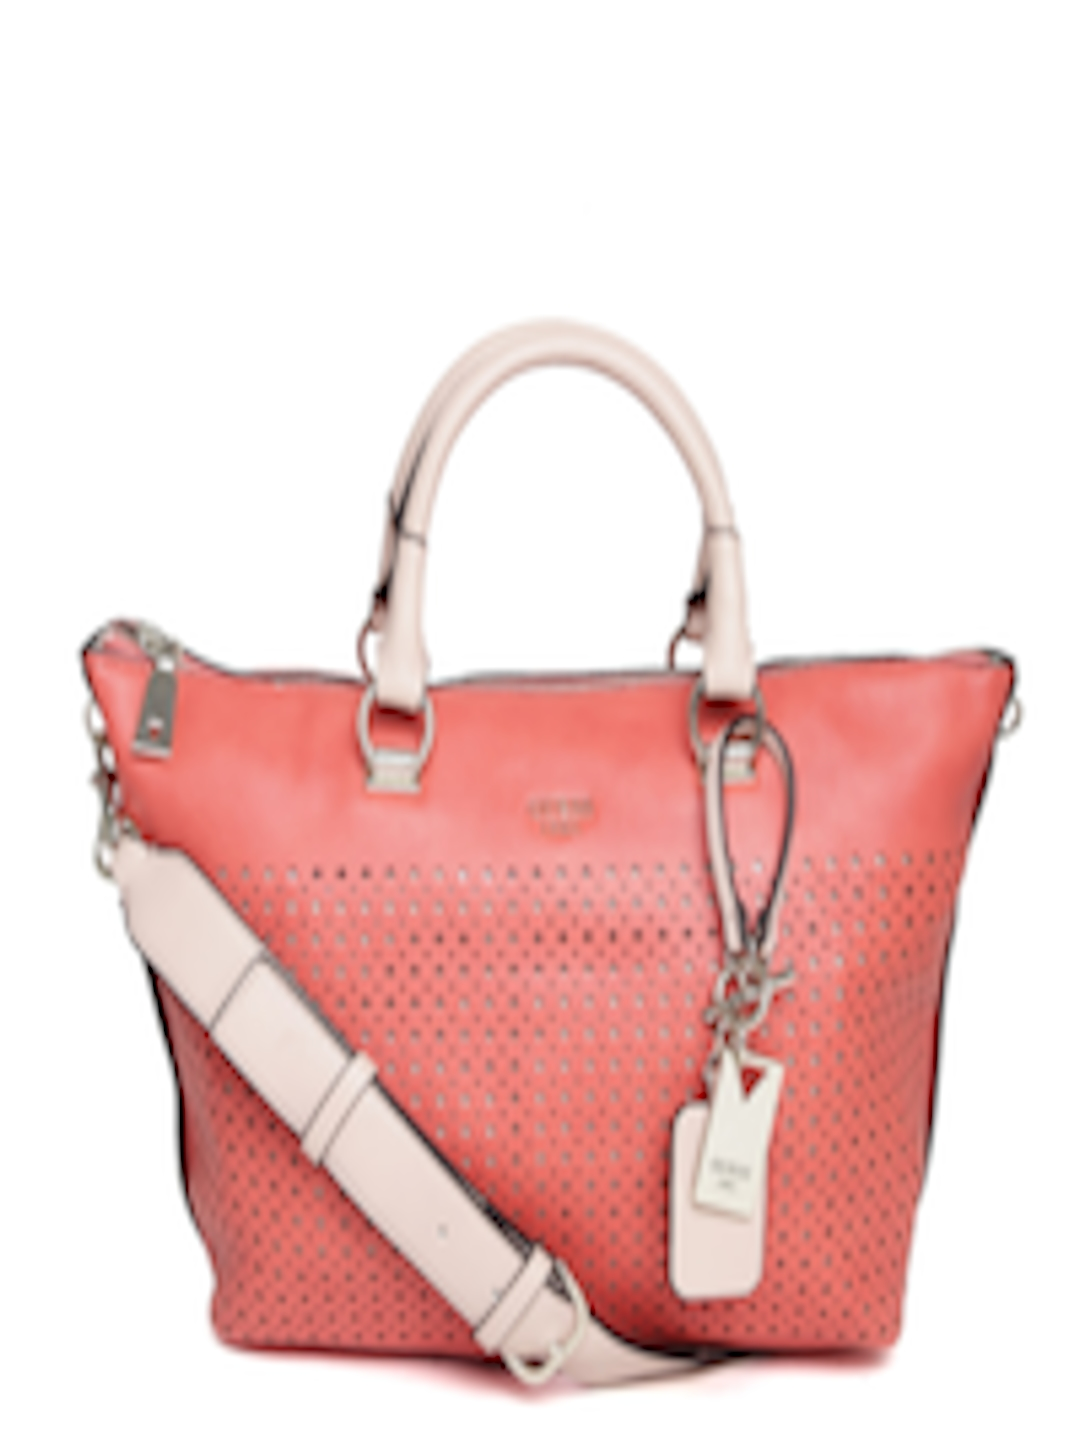 e82ccc095e10 Buy GUESS Coral Orange Cut Out Handbag With Sling Strap - Handbags for  Women 1387522